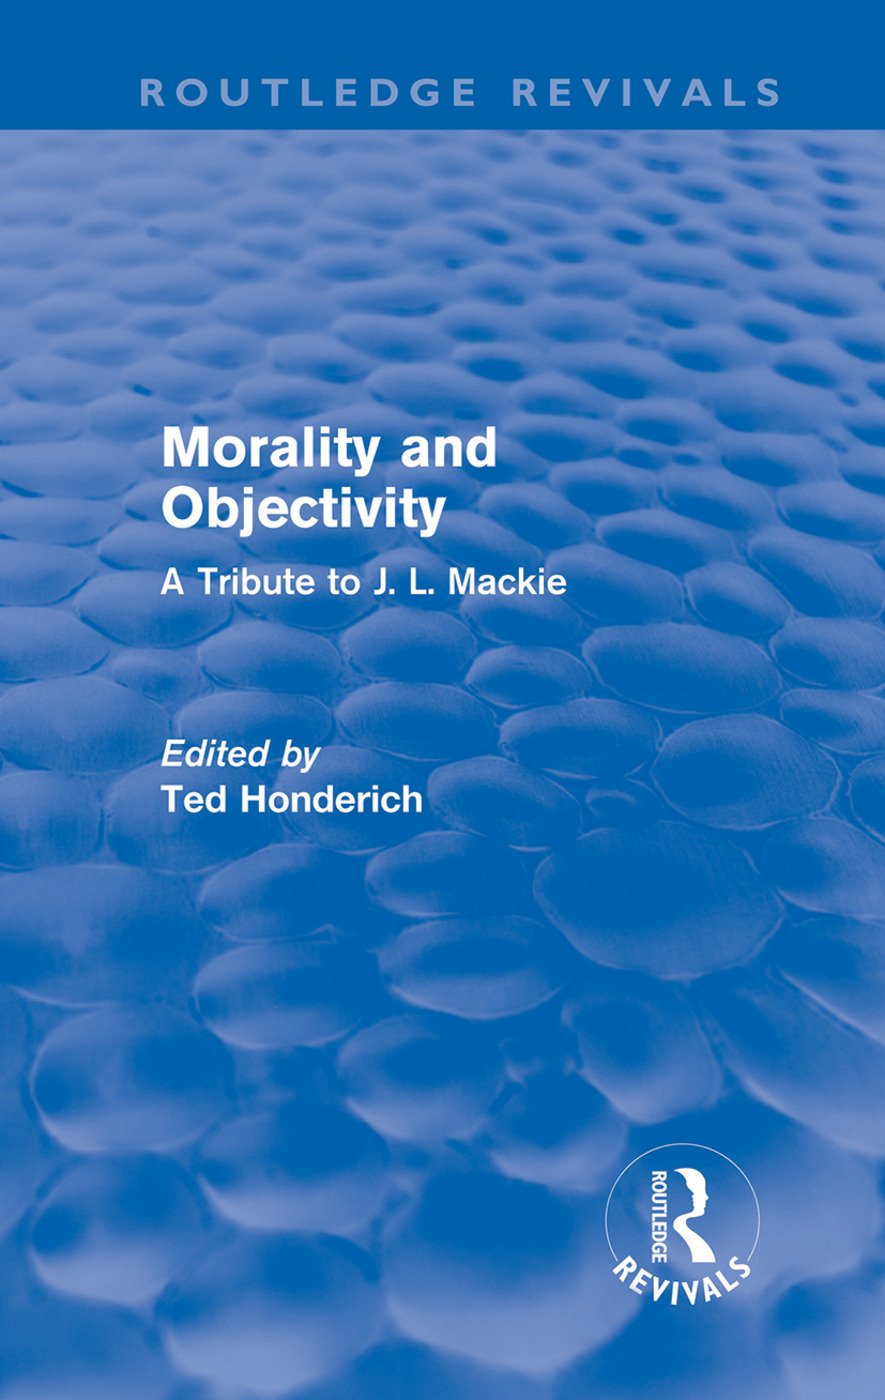 Morality and Objectivity (Routledge Revivals): A Tribute to J. L. Mackie (Hardback) book cover